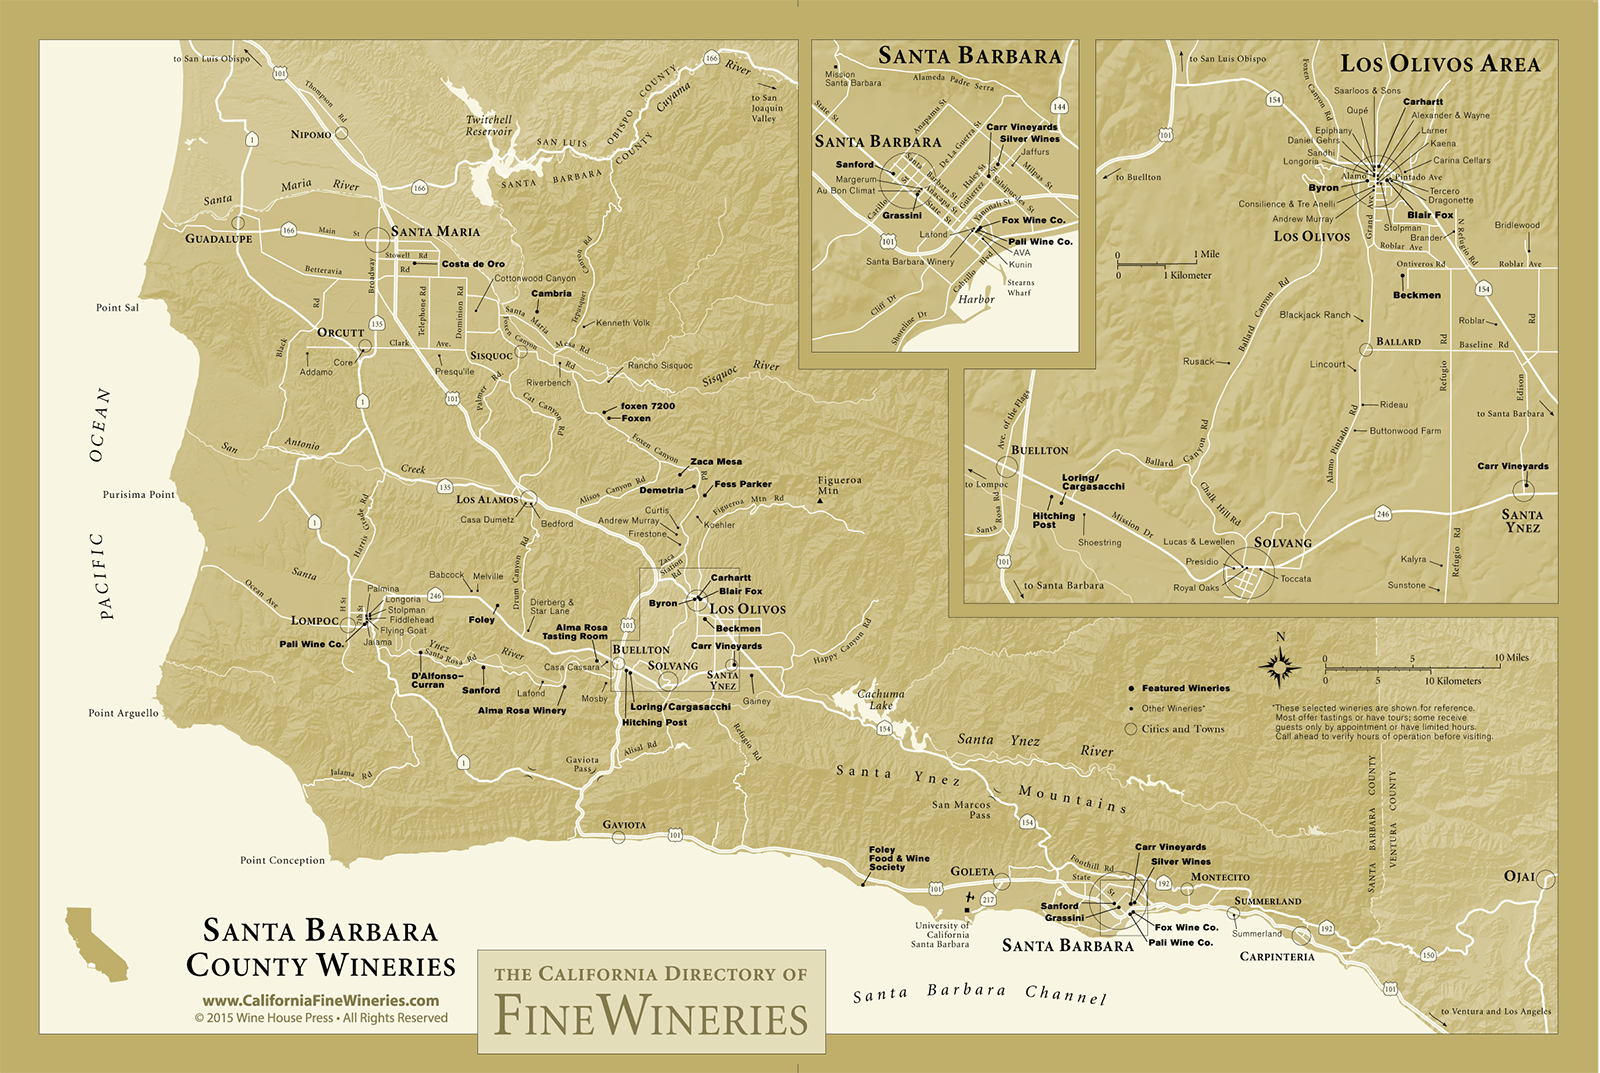 Map of Fine Wineries in Santa Barbara County California